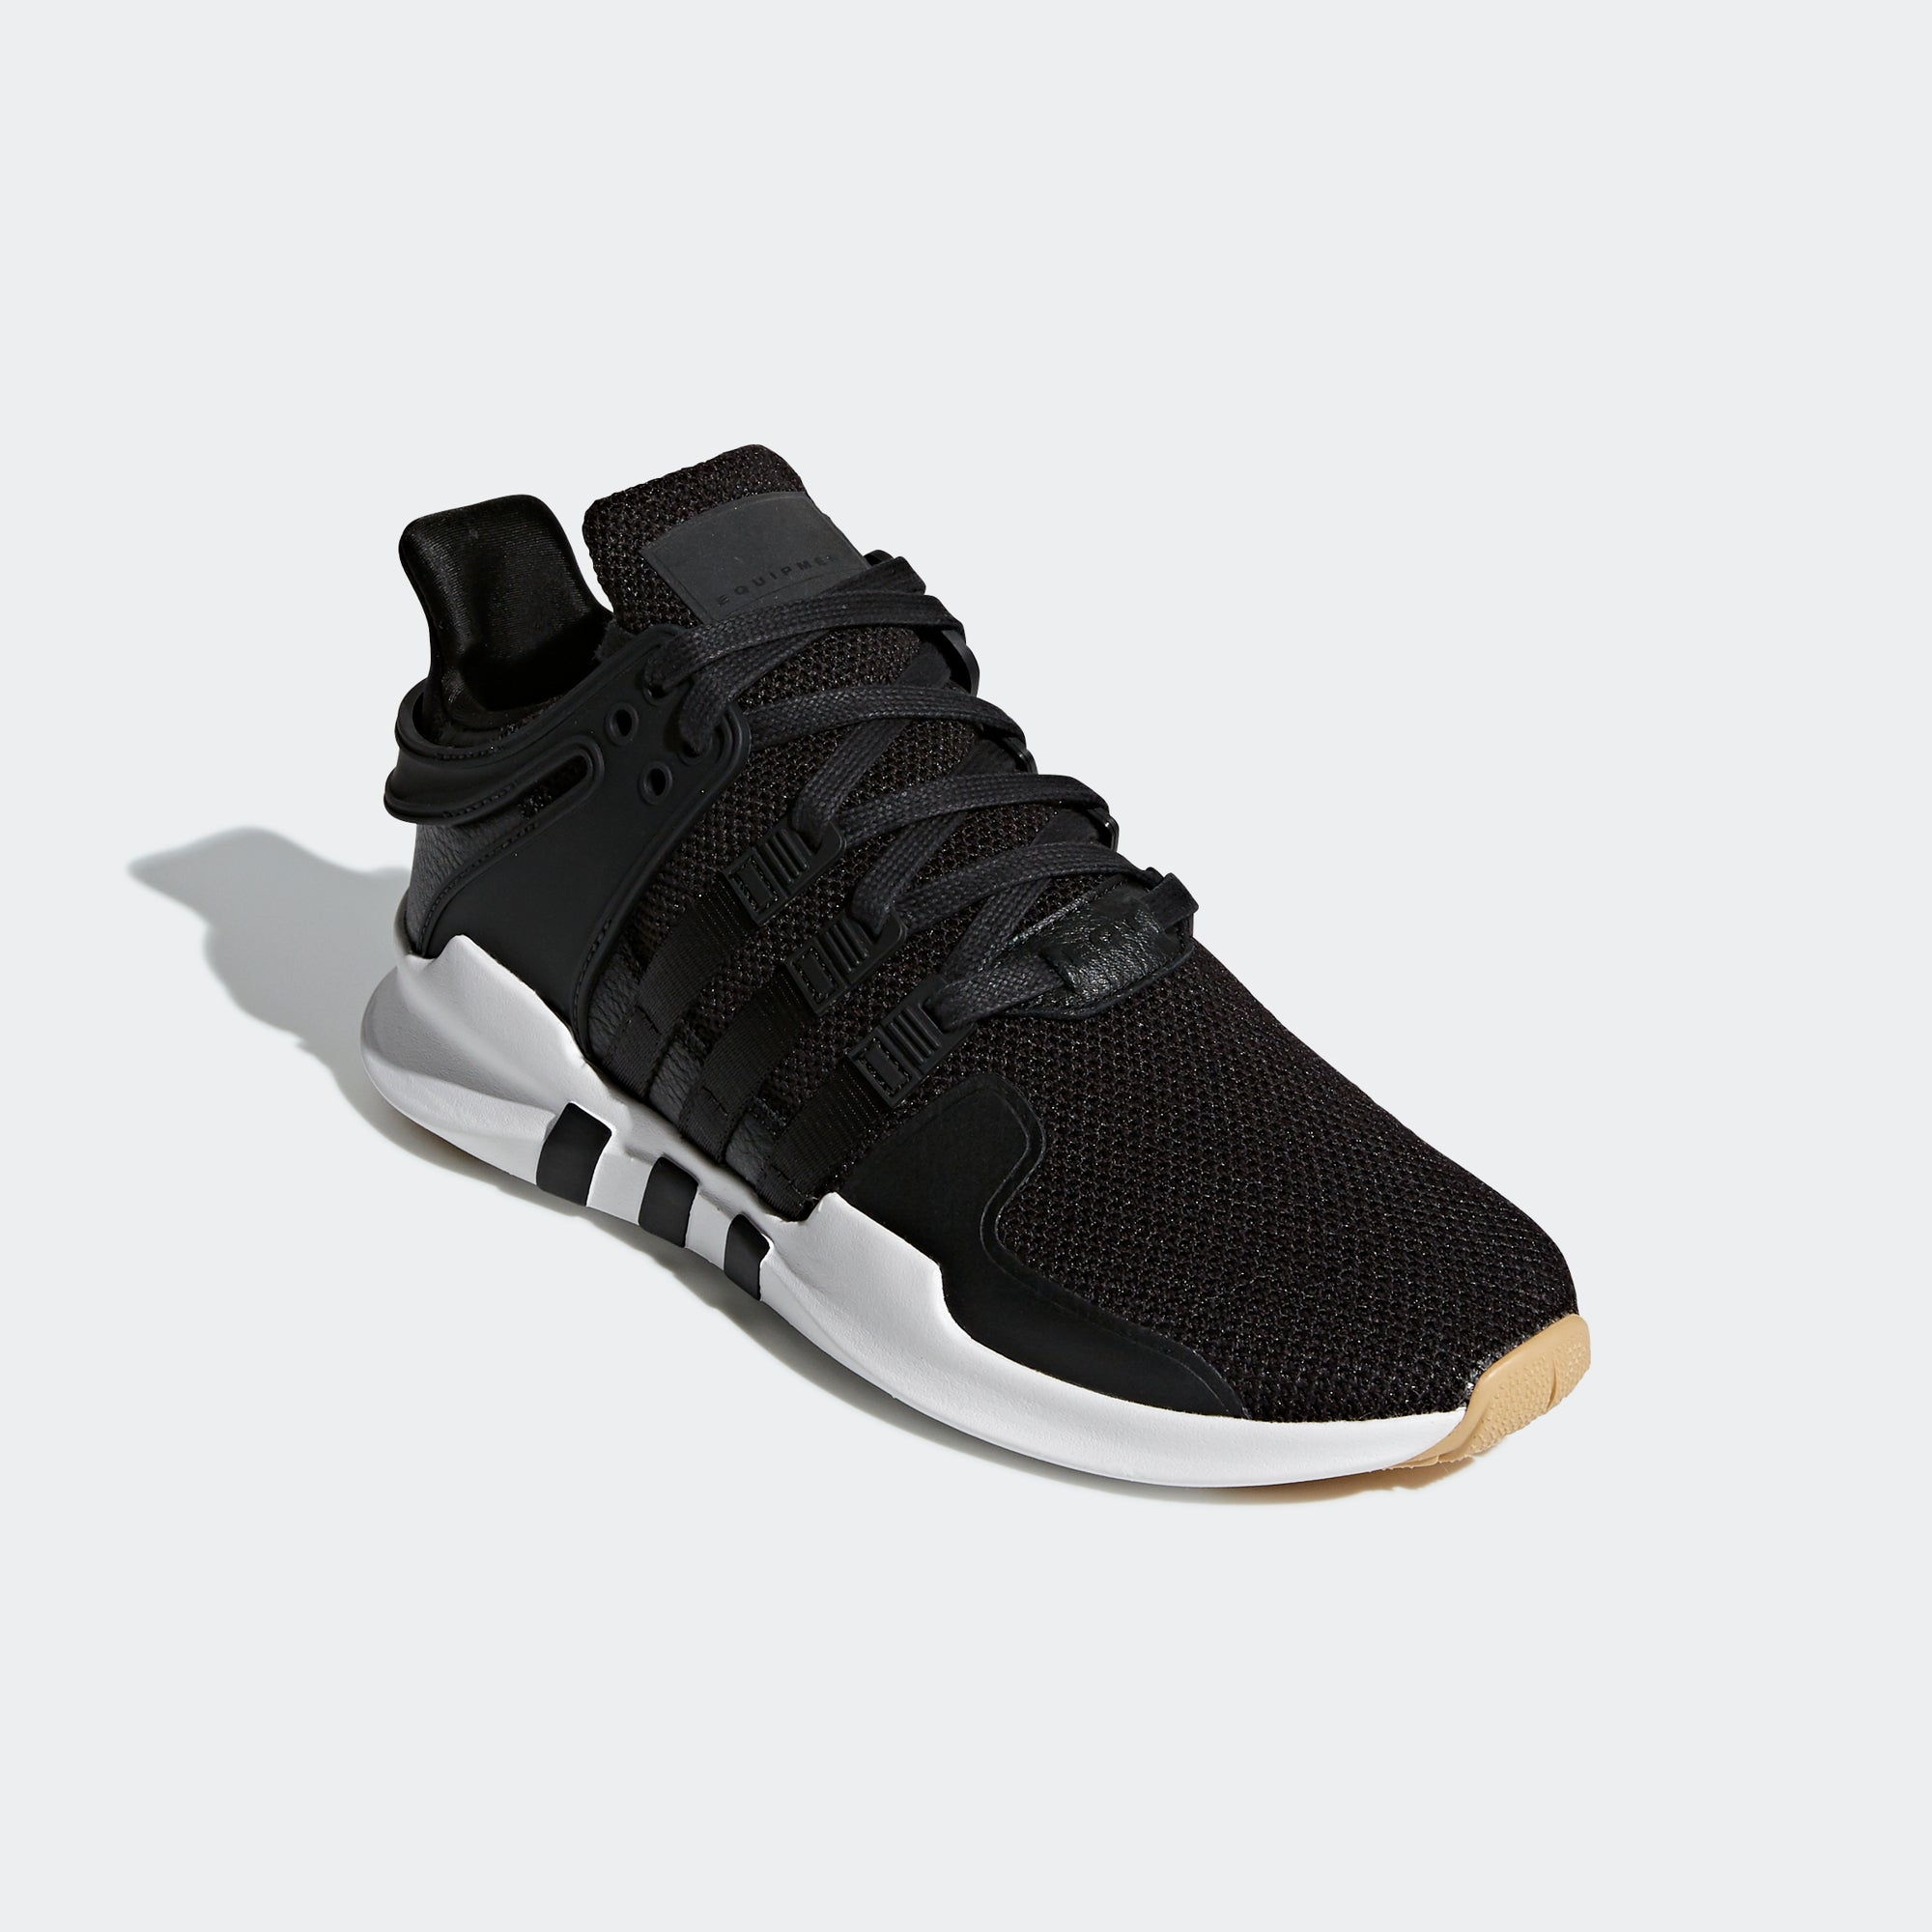 39b5e3782 Men s adidas Originals EQT Support ADV Shoes Core Black Gum. 1